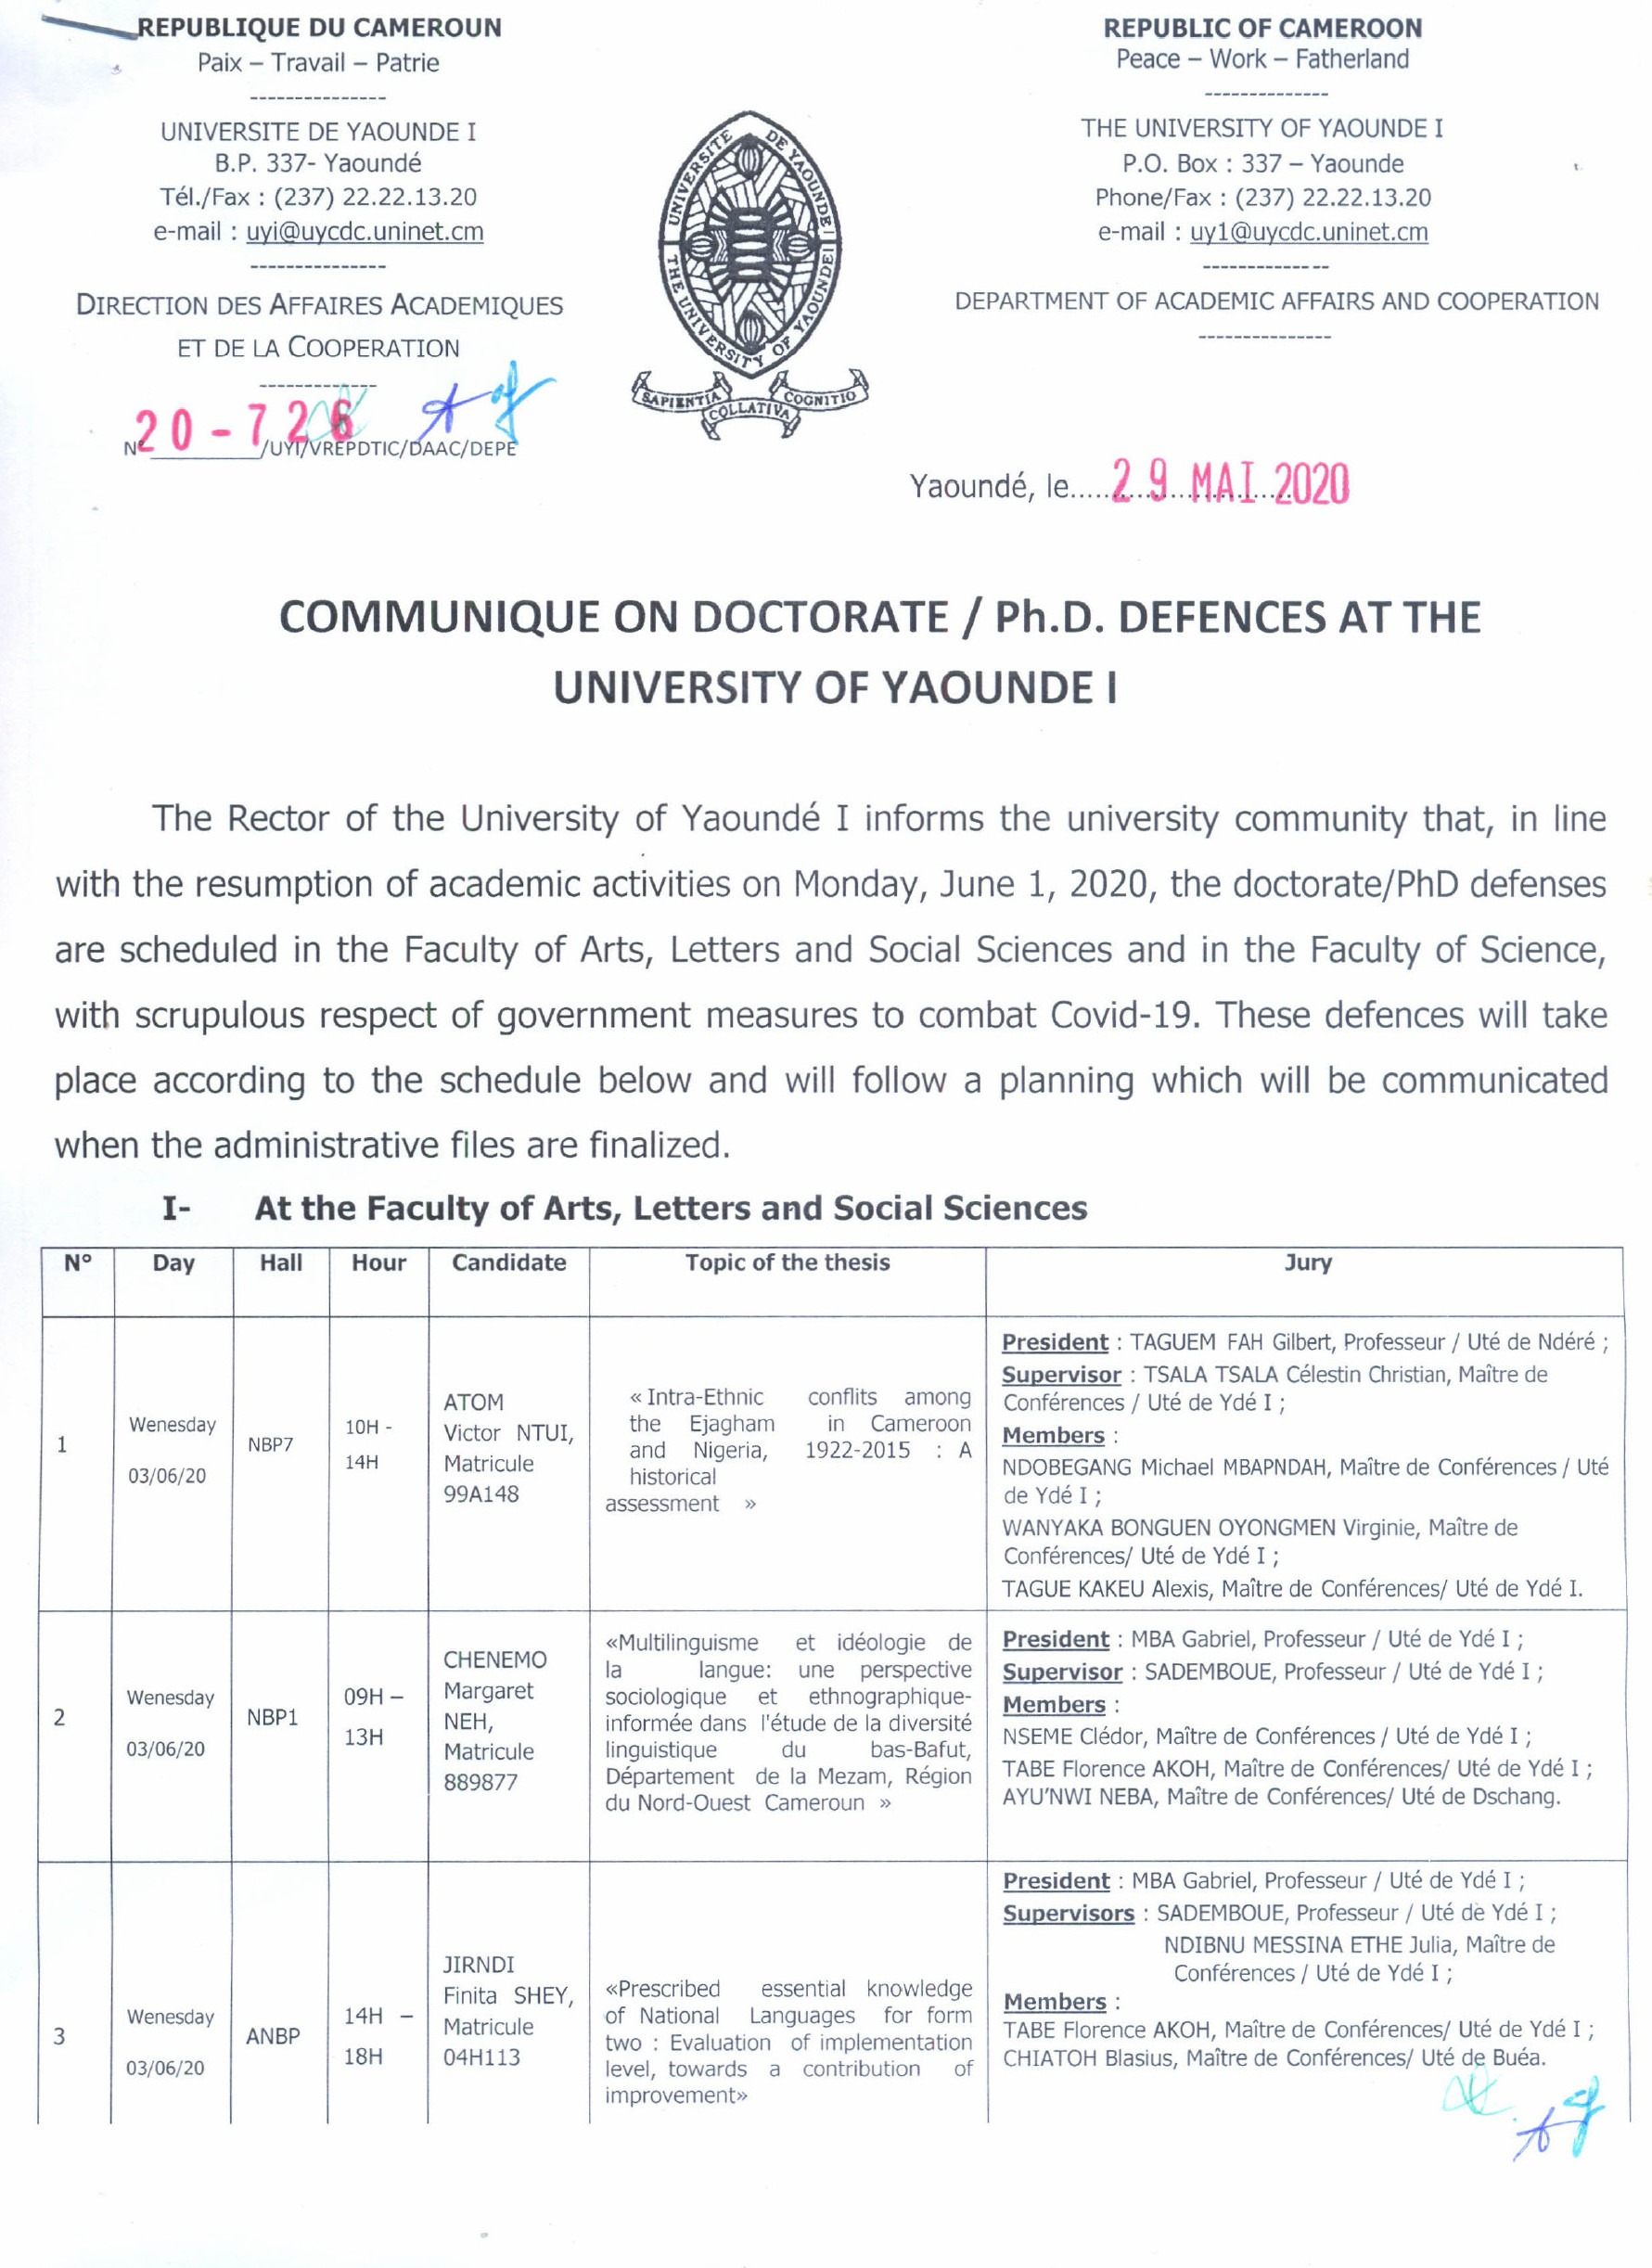 COMMUNIQUE SUR LES SOUTENANCES DE THESE DE DOCTORAT/Ph.D A L'UNIVERSITE DE YAOUNDE I